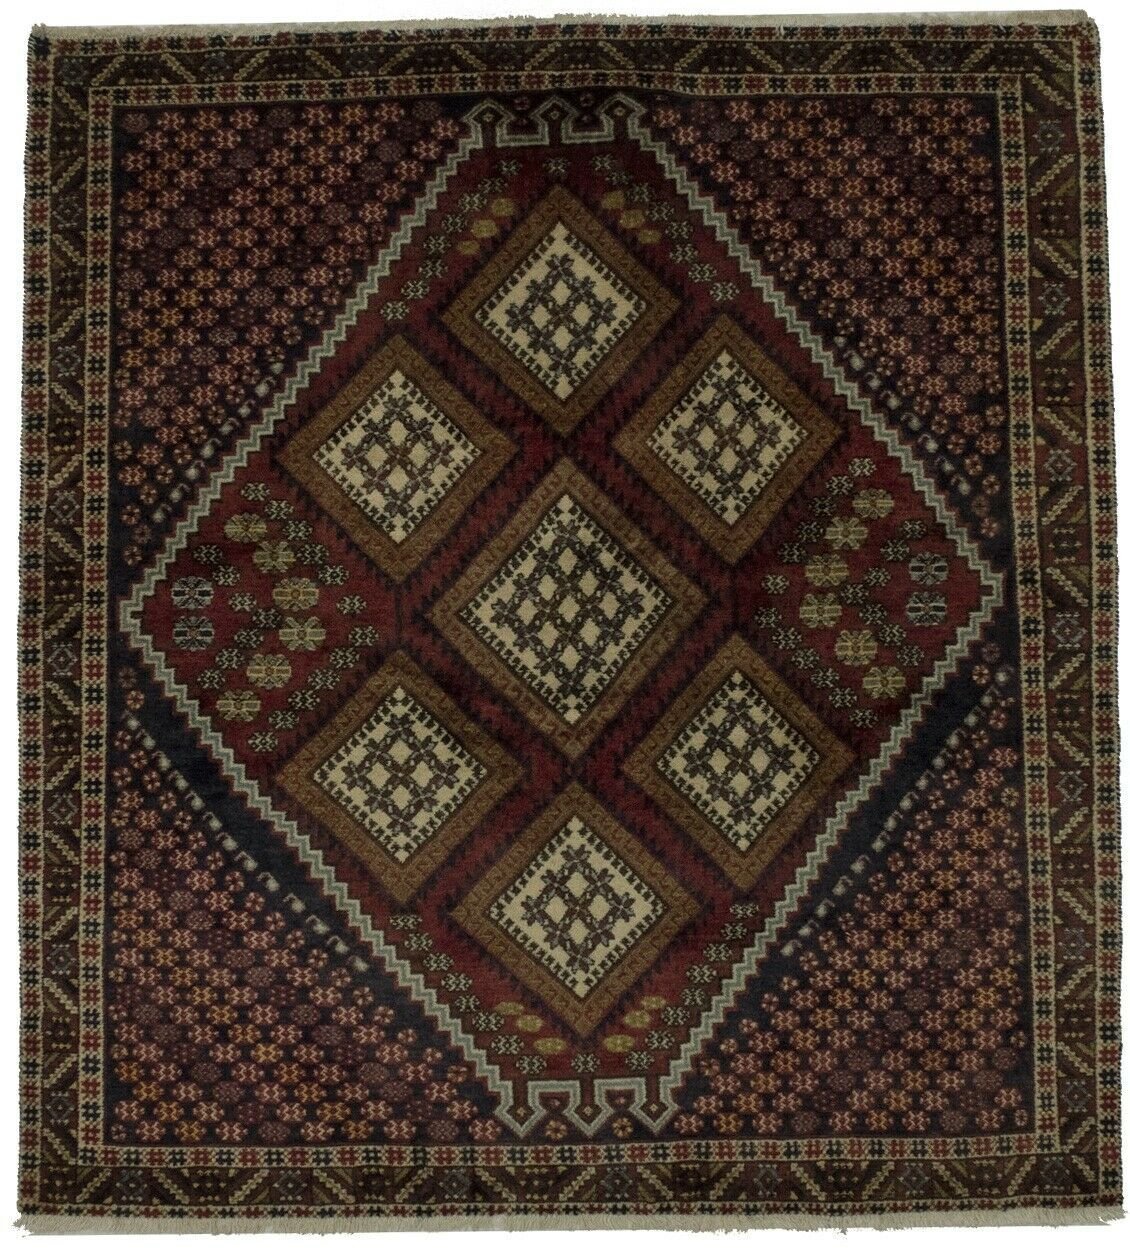 Vintage Tribal Square 6x6 Shahrbabak Hand Knotted Wool Oriental Area Rug Carpet Kitchen Sofa Ideas Of Kitchen Sofa Kitchensofa Ki In 2020 Rugs On Carpet Carpet Pricing Kitchen Sofa